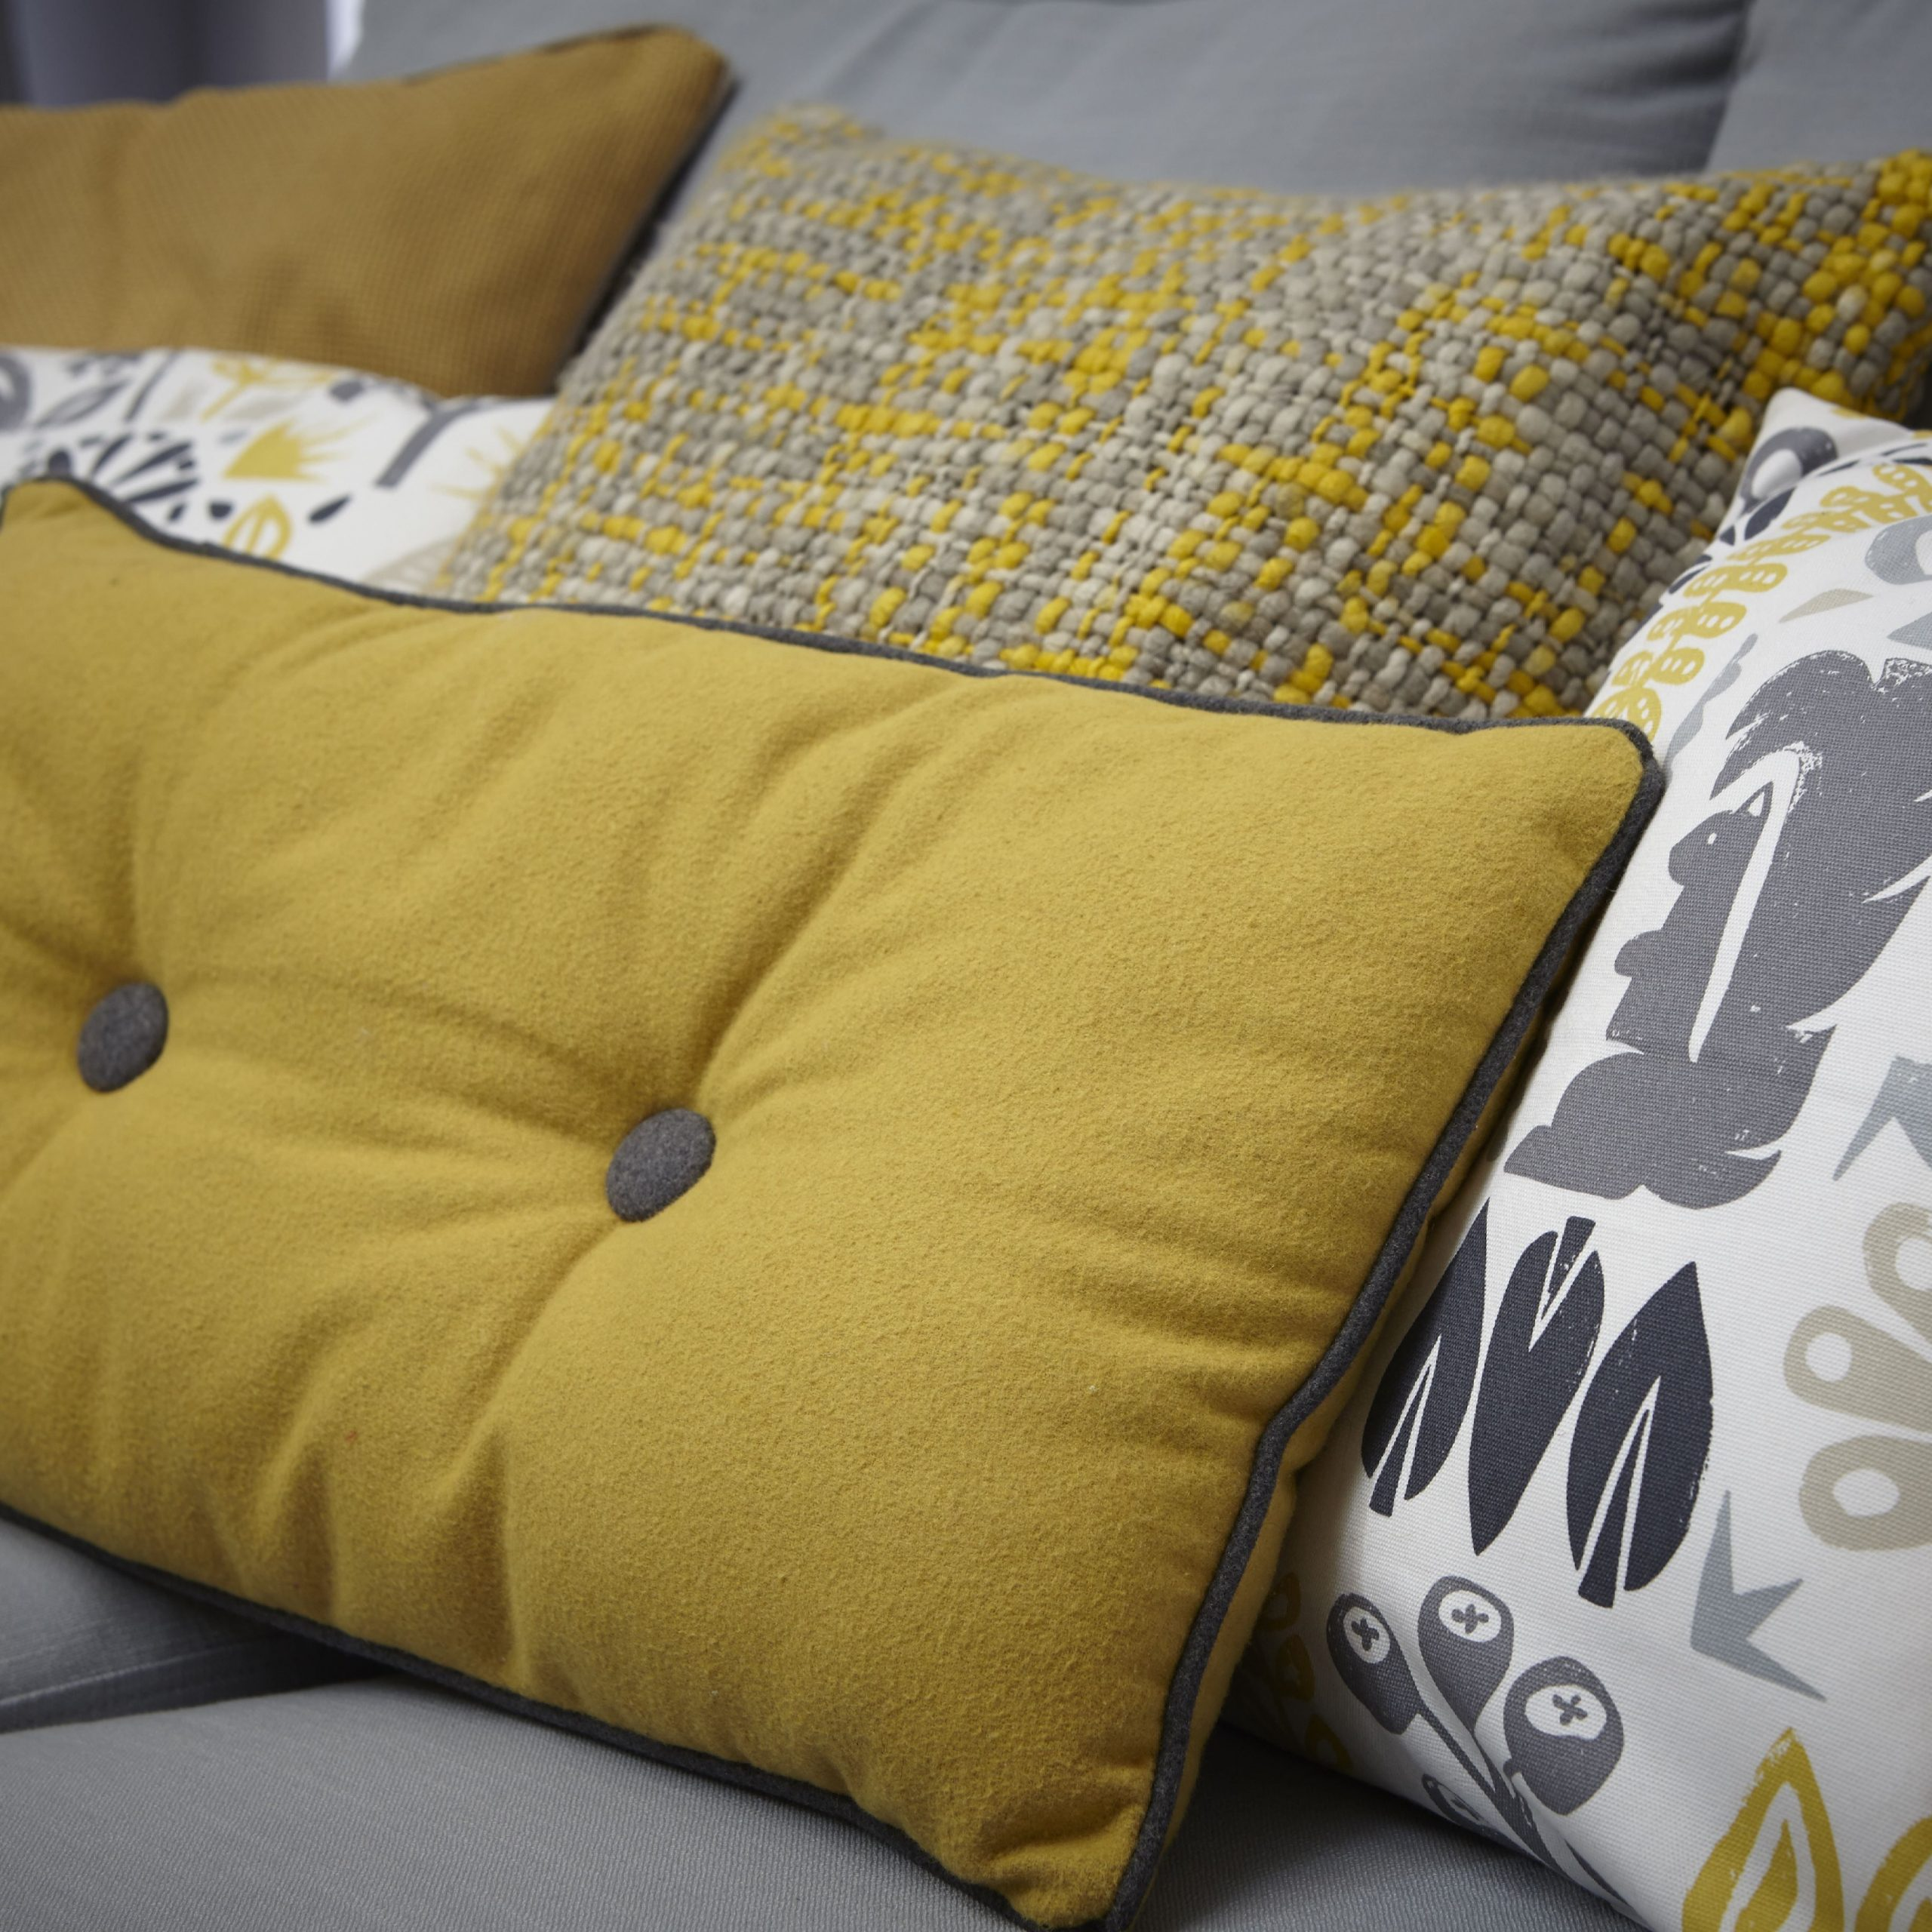 Living Room Grey, Cushions On Sofa With Regard To Favorite French Seamed Sectional Sofas Oblong Mustard (View 19 of 20)